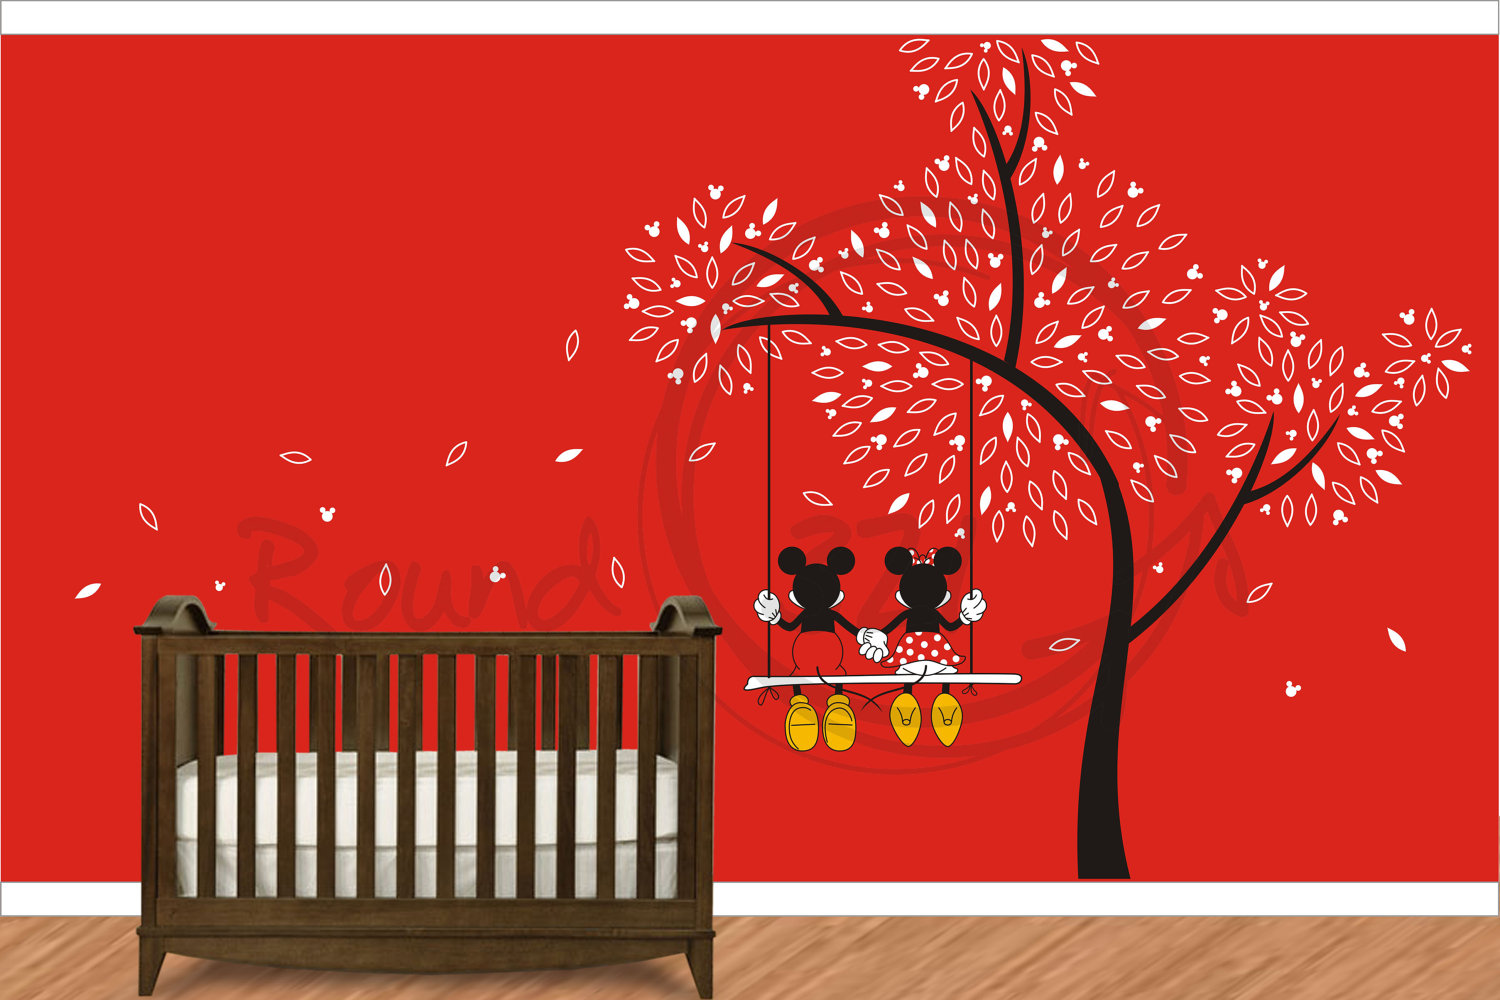 Minnie Mouse Wall Decor | Minnie Mouse Bedroom Sets | Minnie Mouse Tv Stand